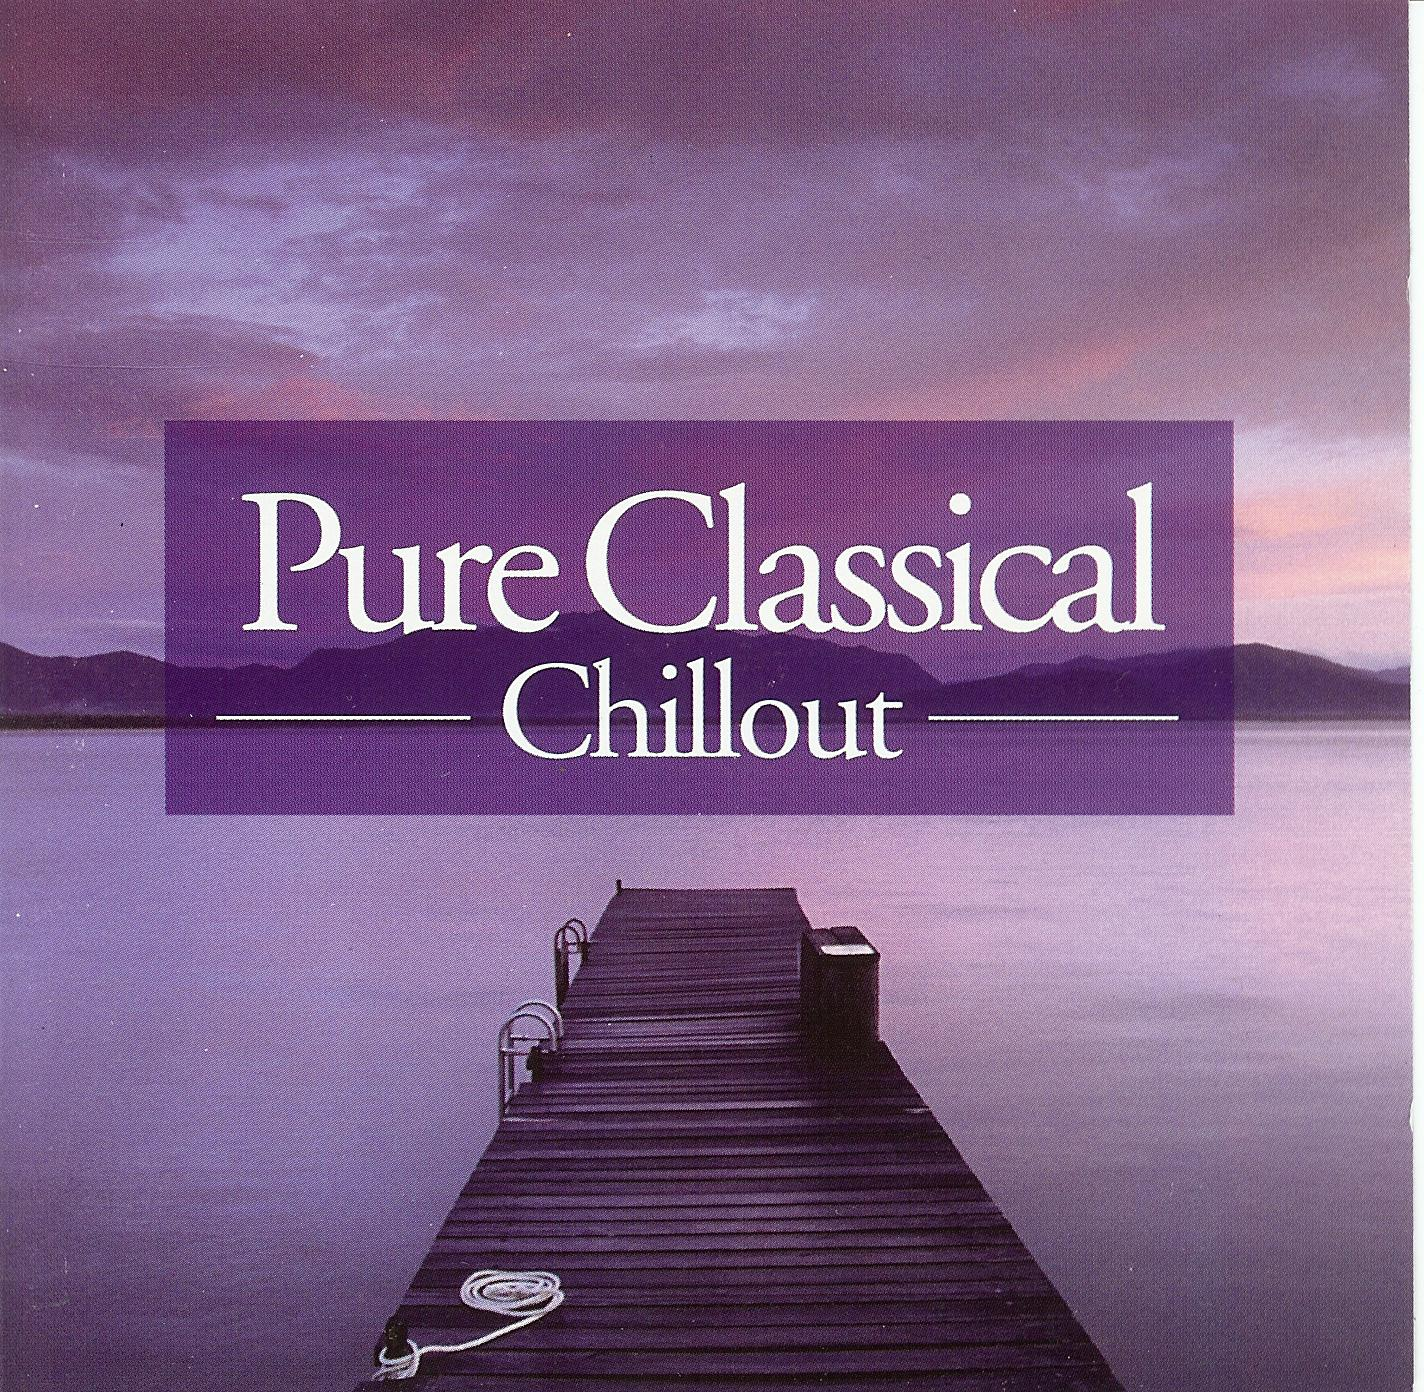 Image of the Pur Classical Chillout CD cover